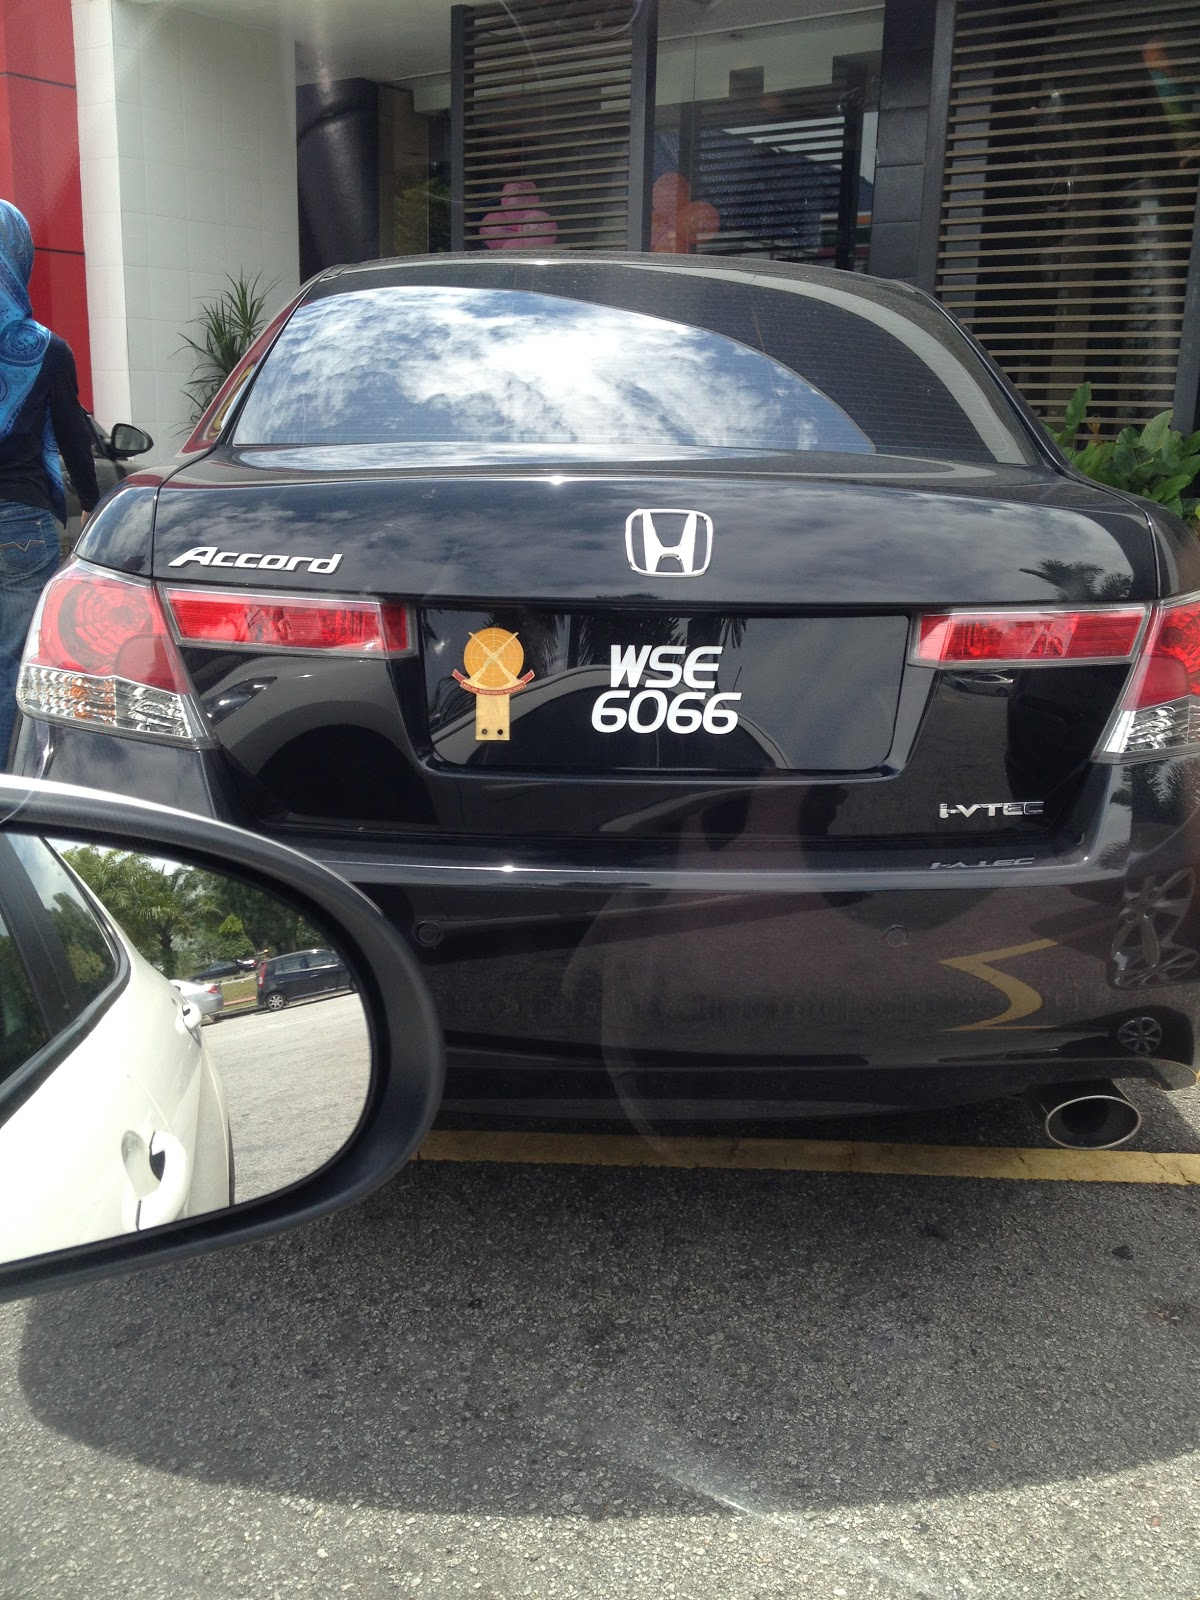 Car sticker design selangor - If You Are A Datuk Or Someone Who Carries An Official Title Before His Name You Need To Let The Other Drivers Know That You Are One So That They Can Be